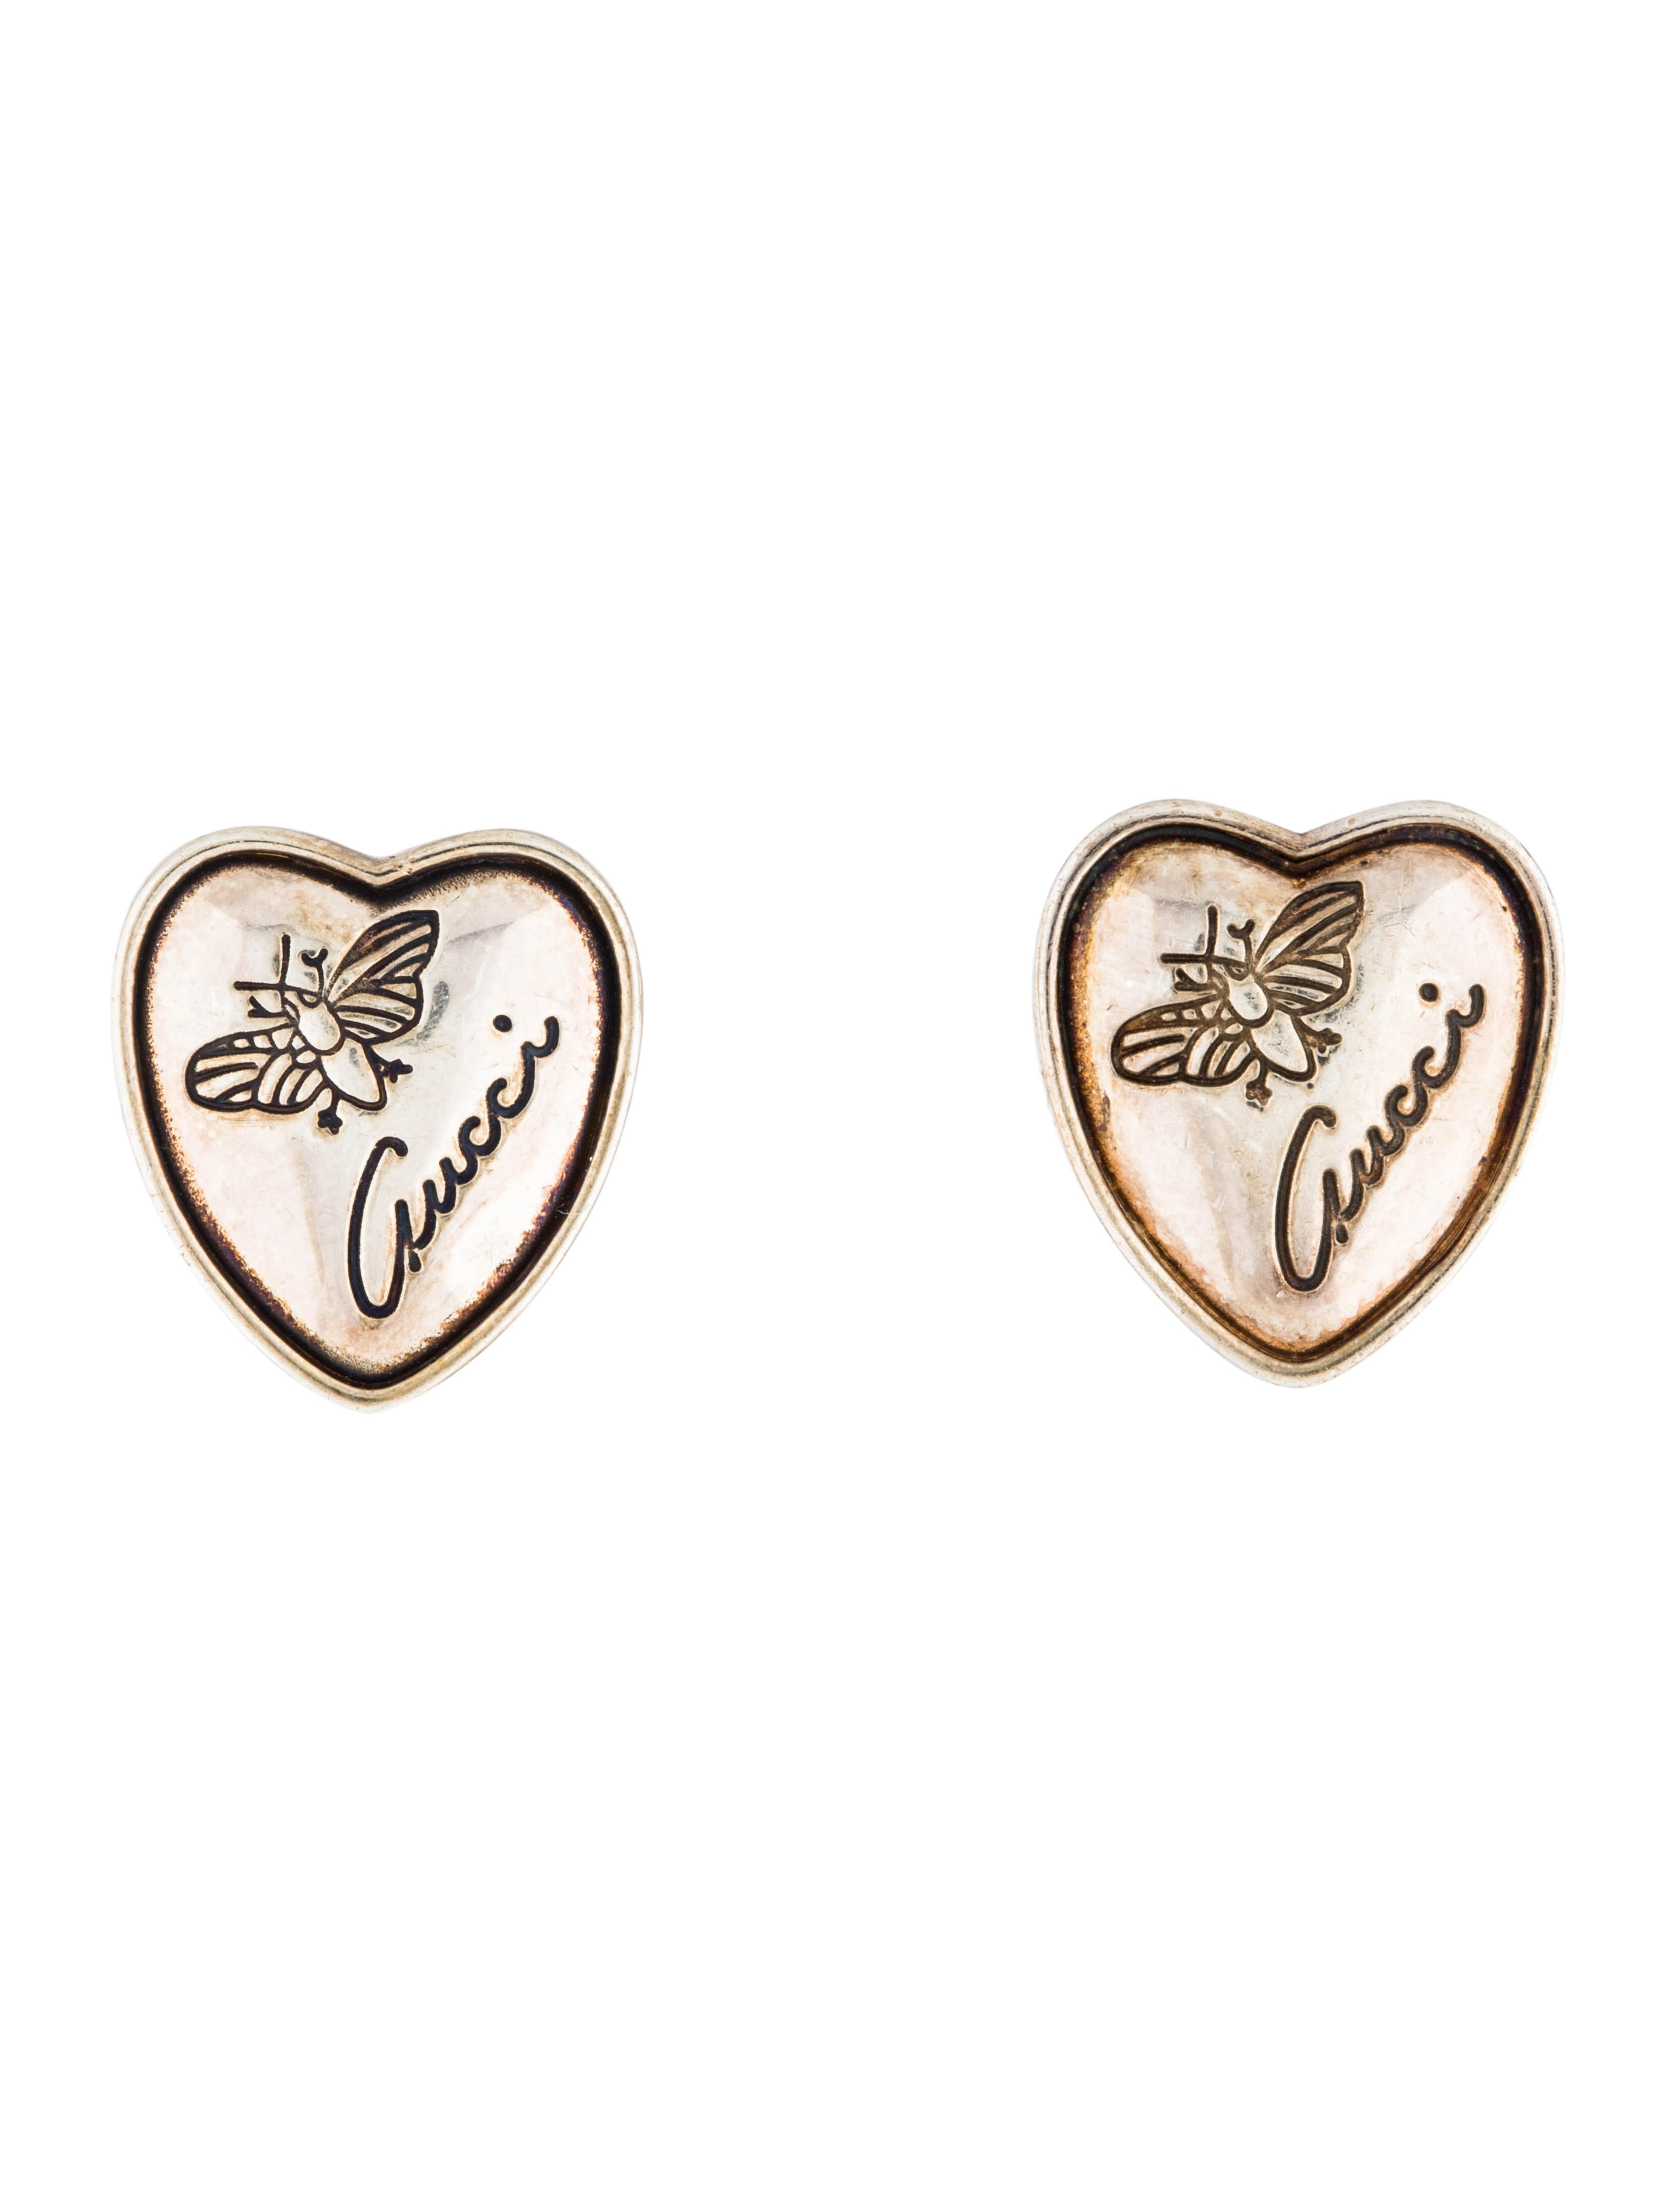 5aecf7d8d57 Gucci Flora Heart Stud Earrings - Earrings - GUC253126